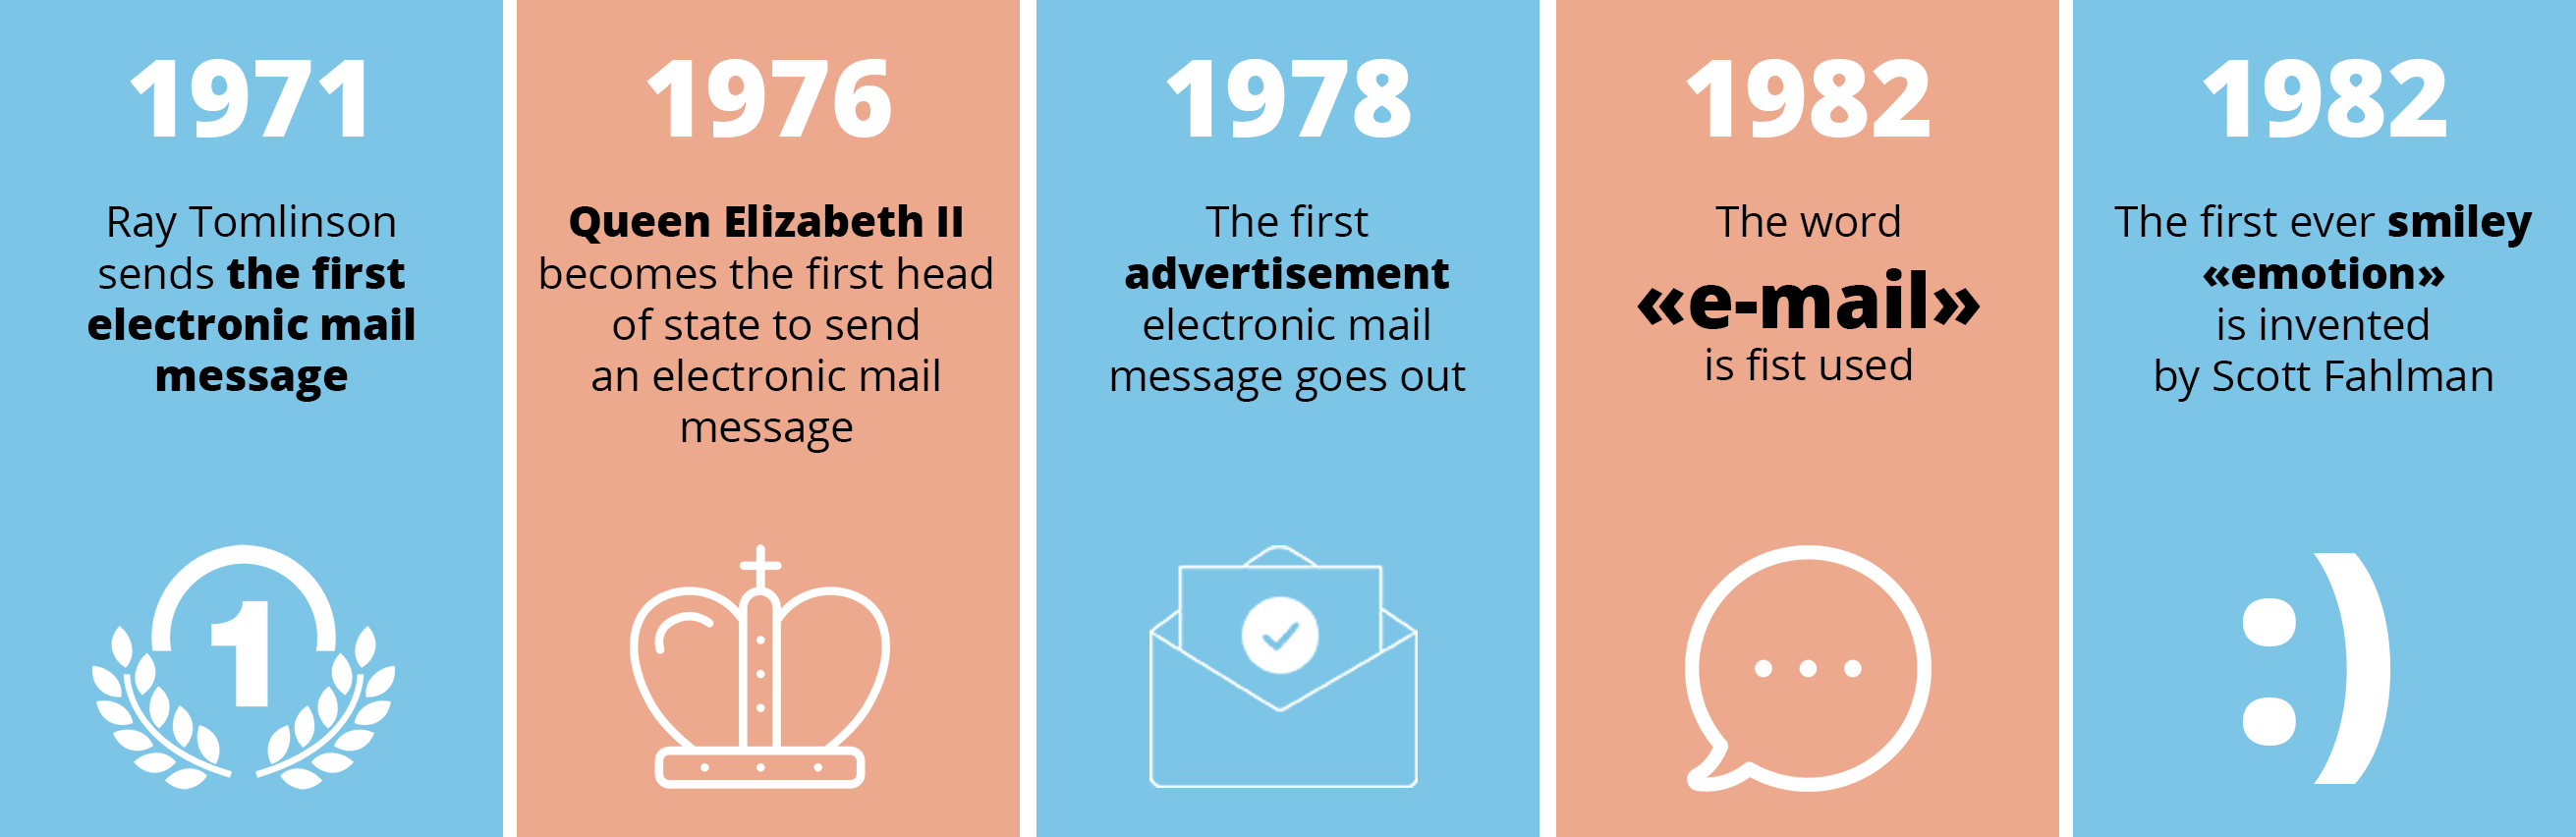 SFLetter.com :: Celebrating 45 Years Of Email